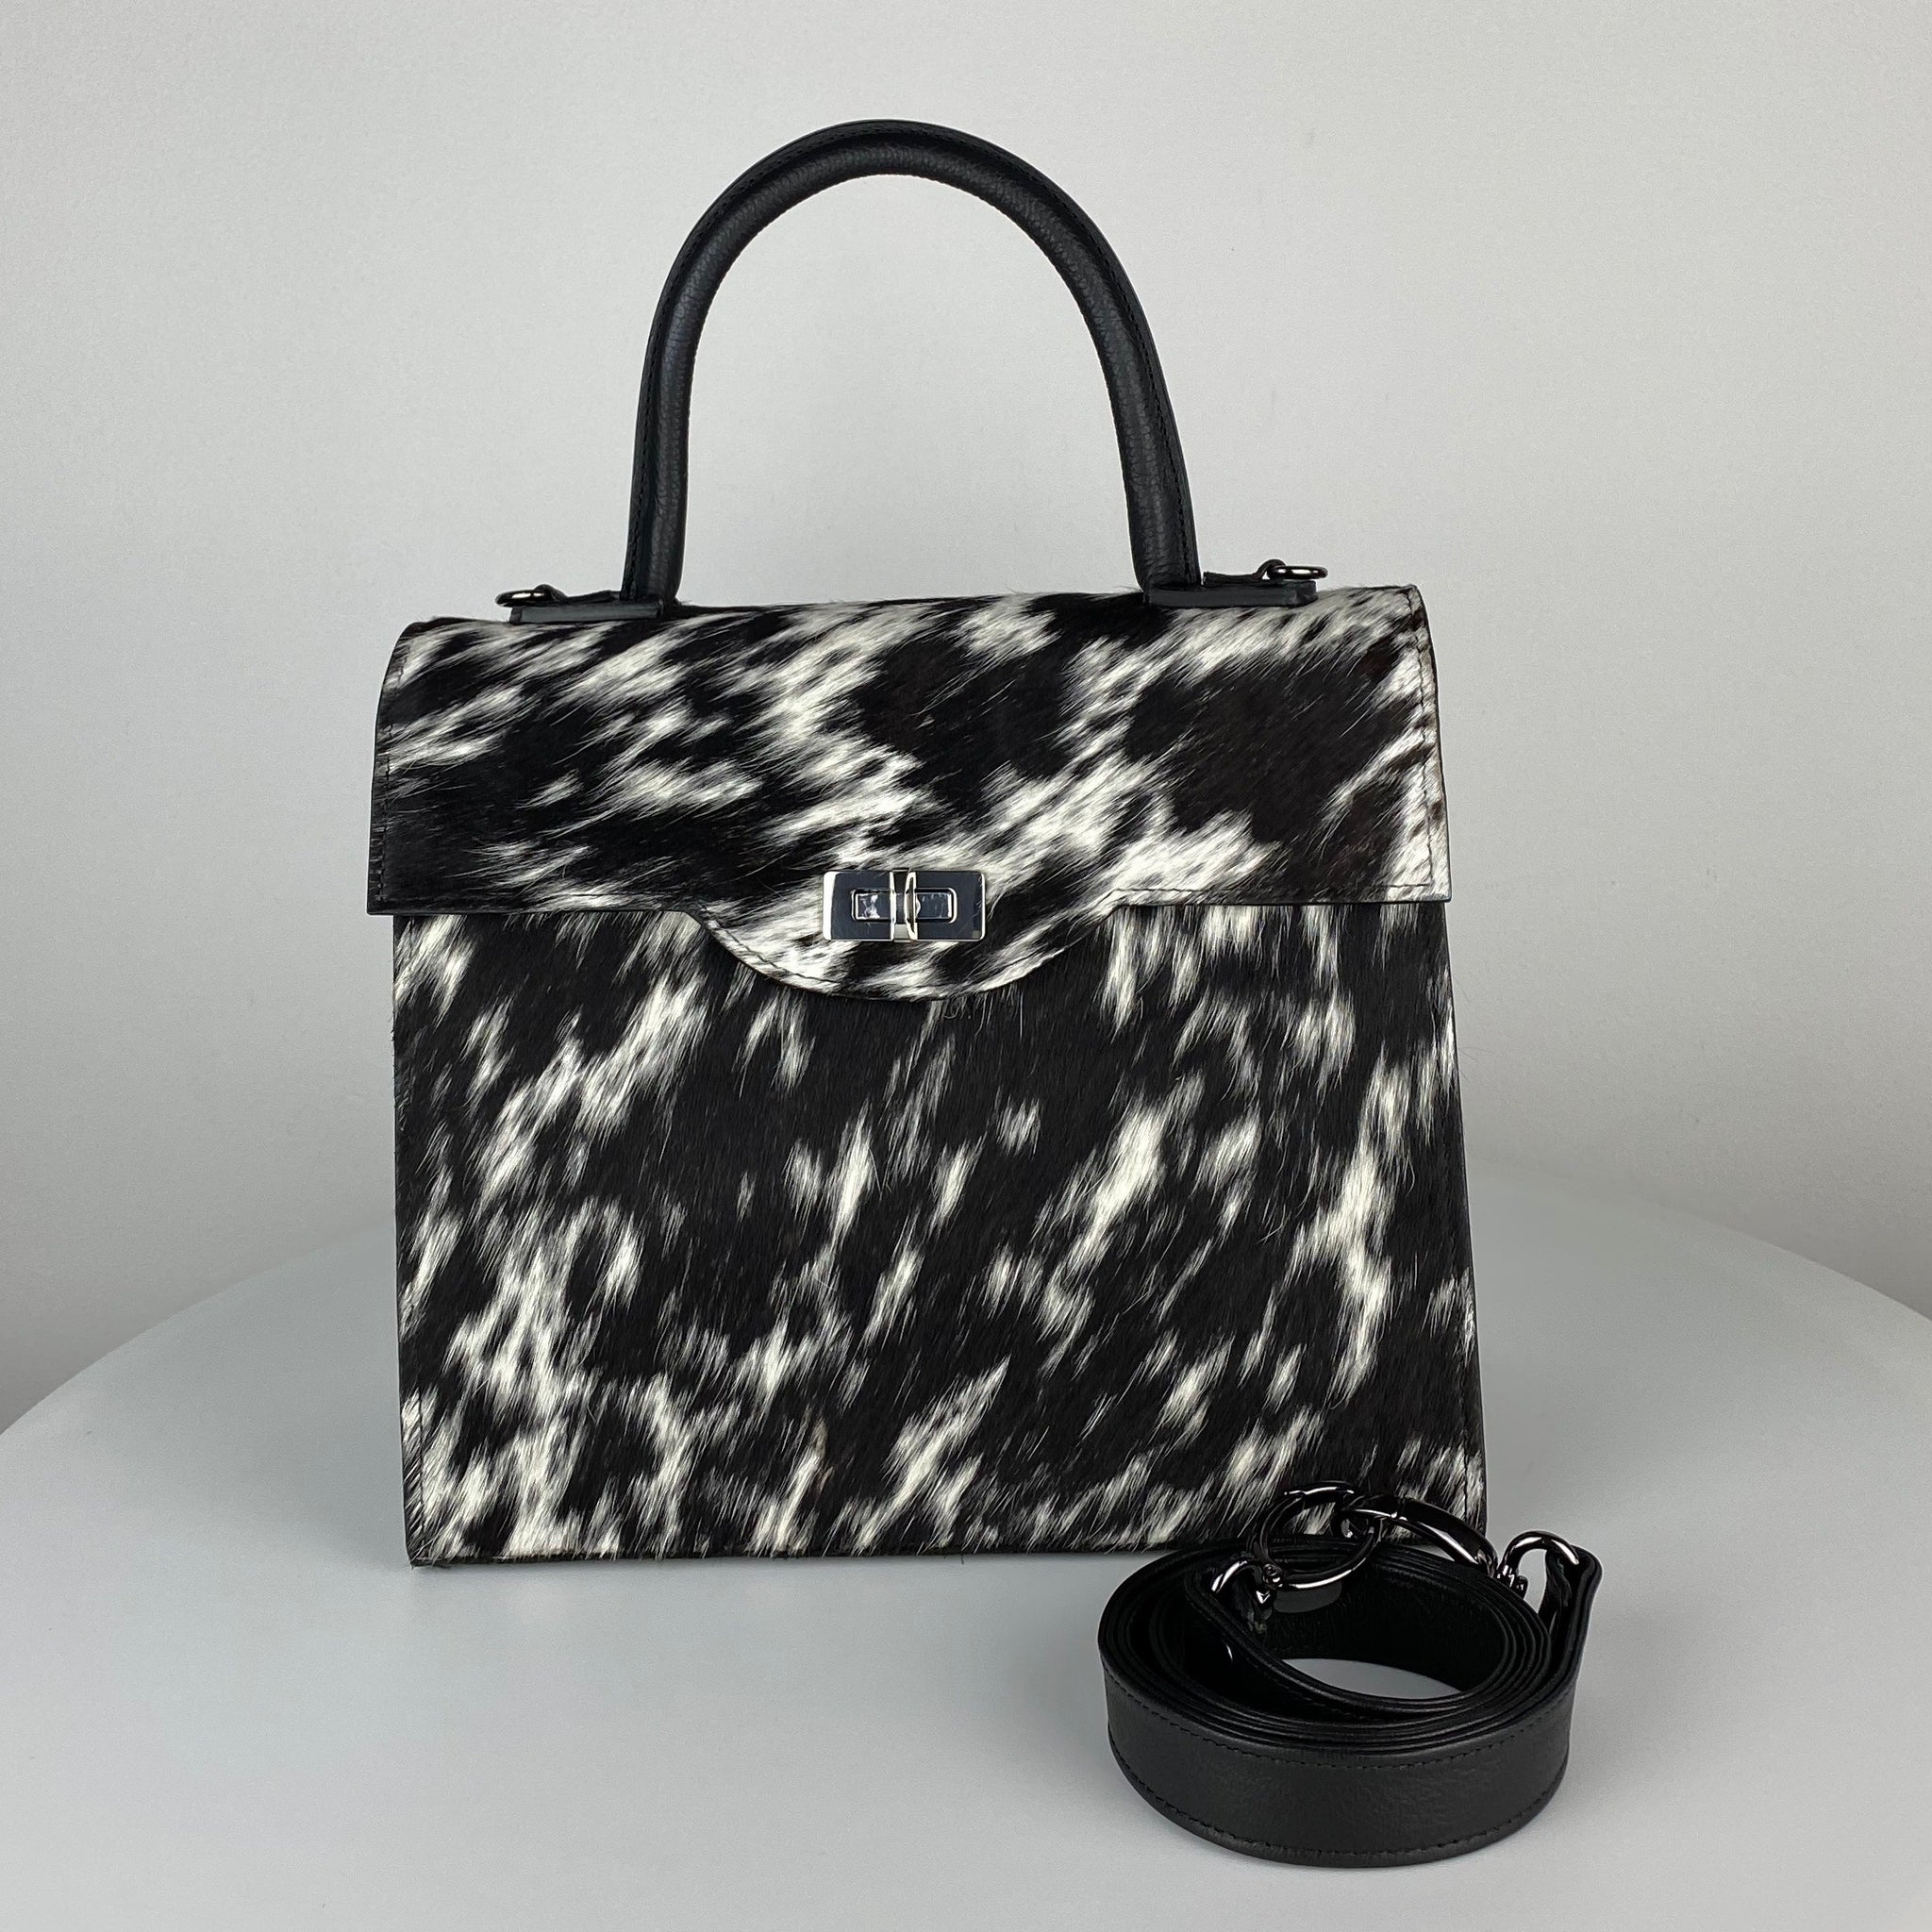 ANGIE STRUCTURED BAG, BLACK & WHITE CALF HAIR